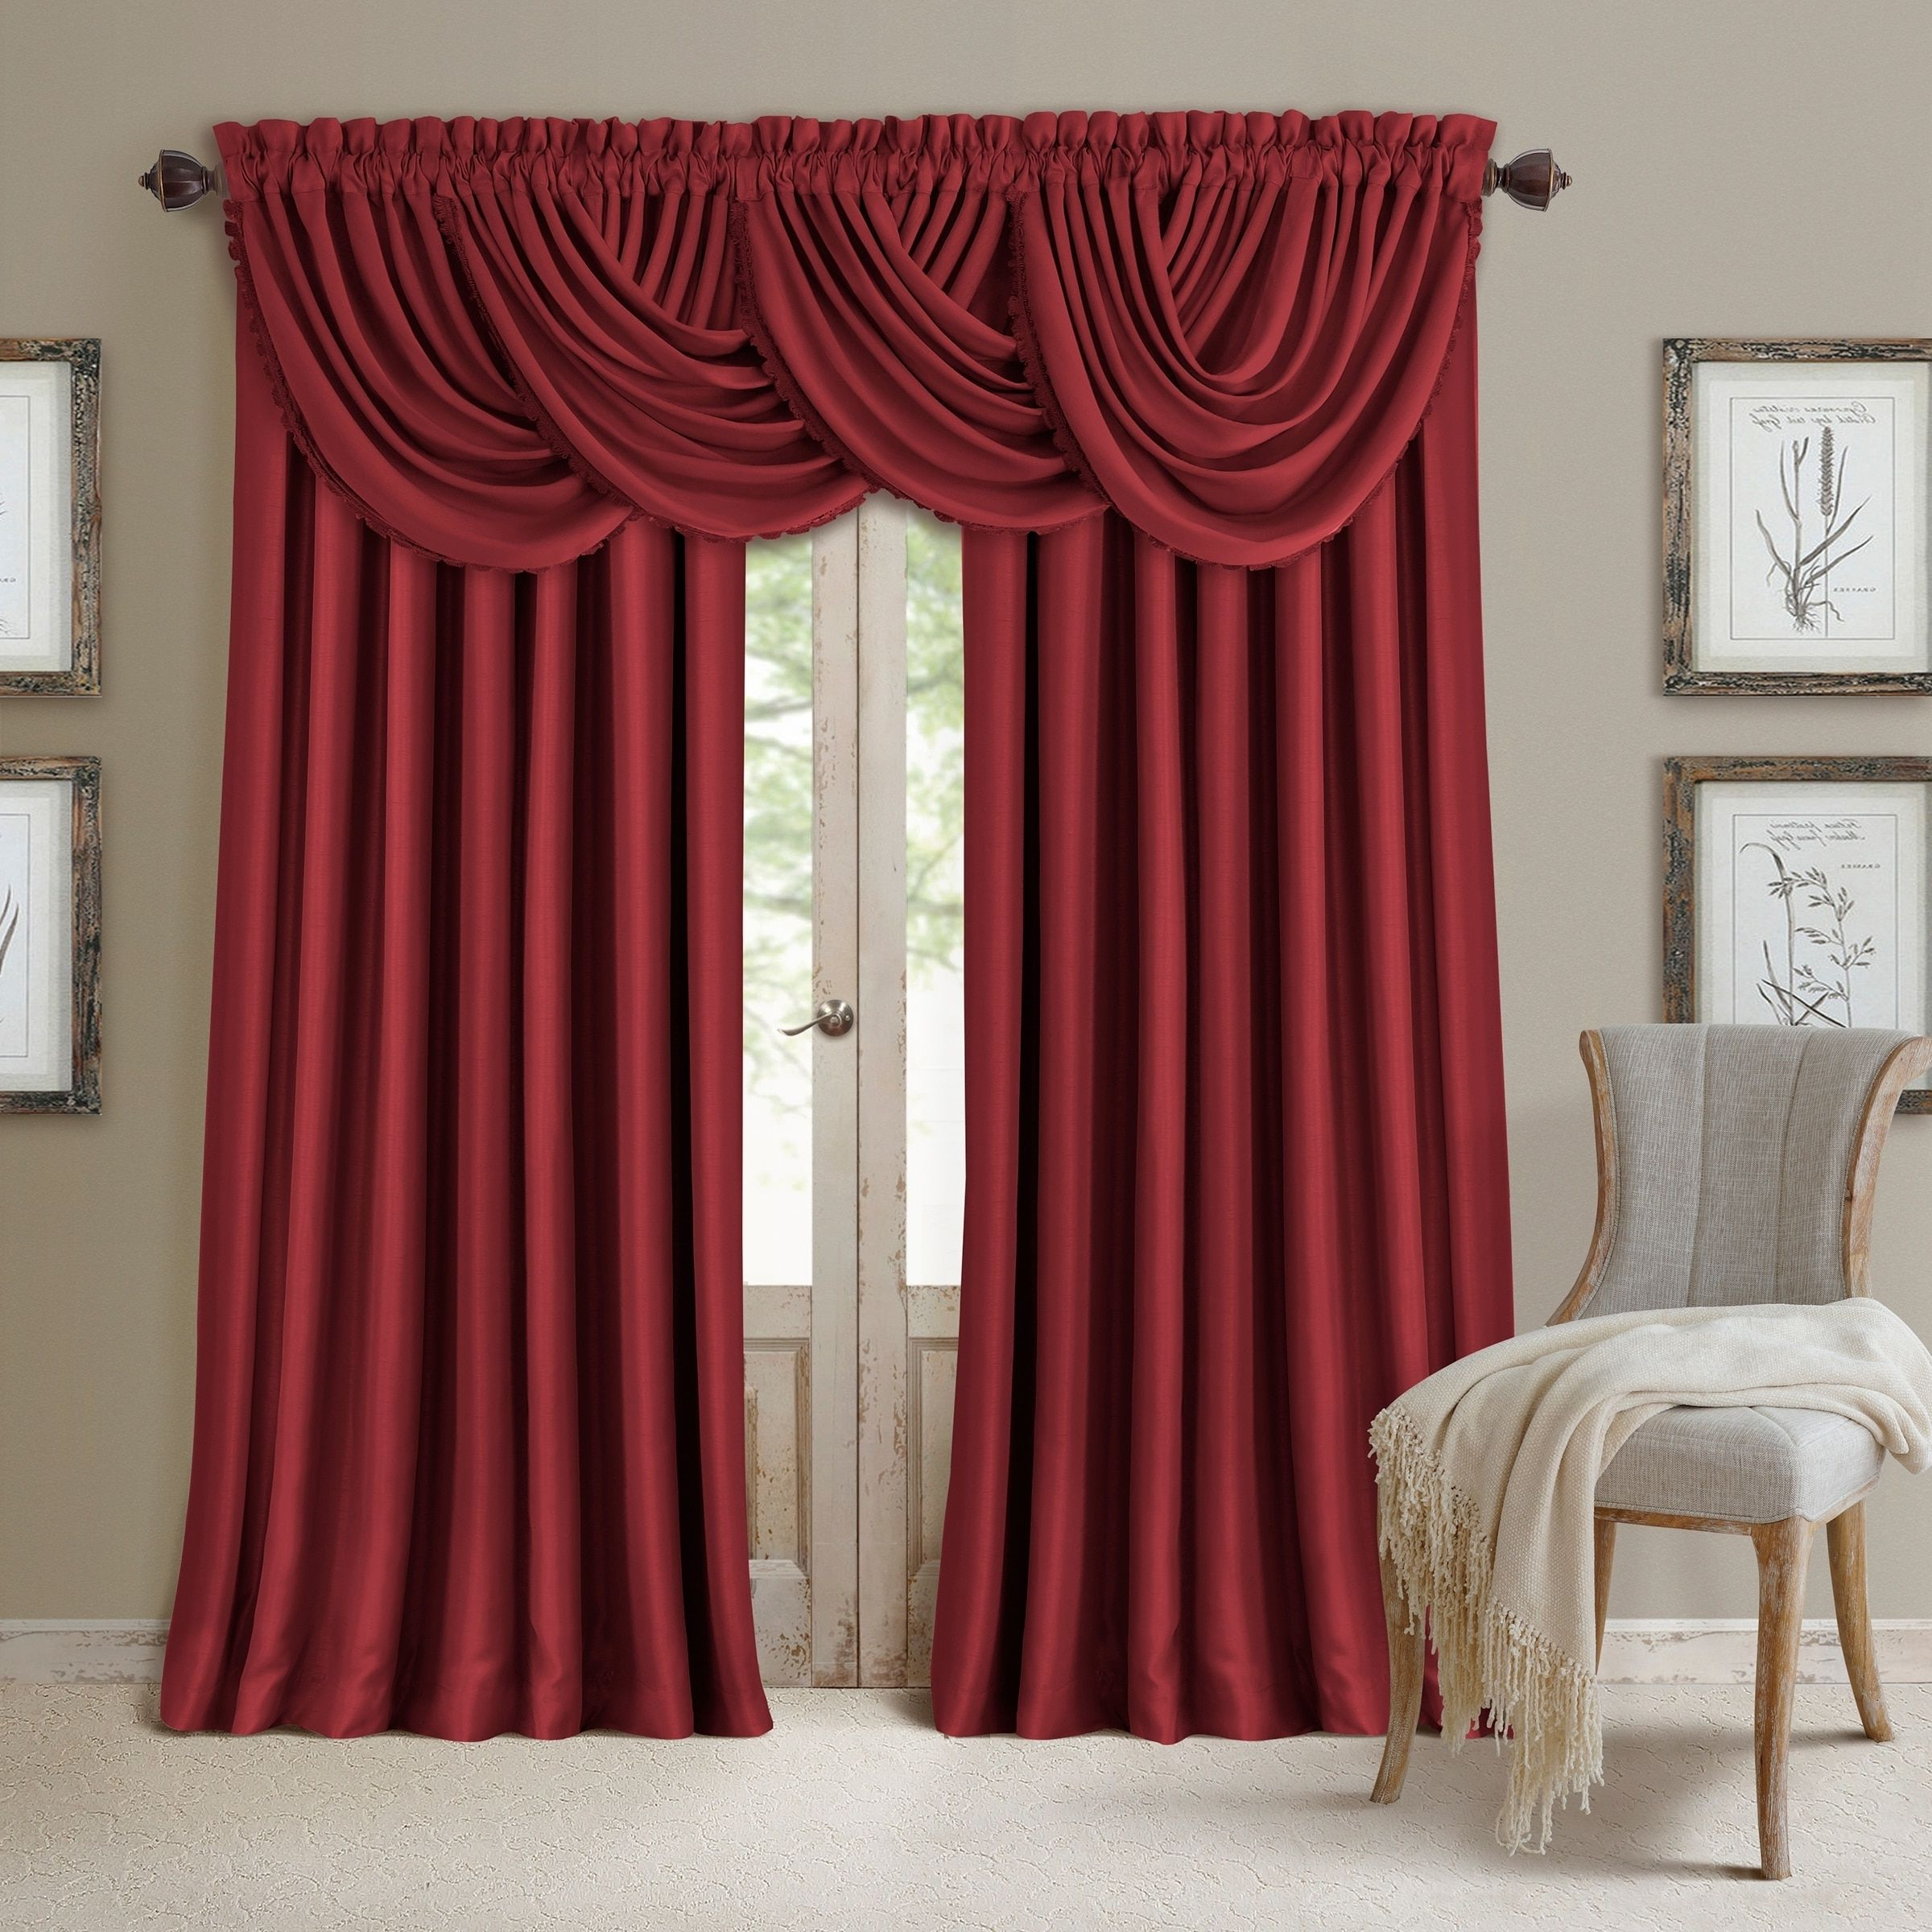 """Widely Used Elrene All Seasons Blackout Curtain Panel (52""""x84"""" – Rouge With Regard To Elrene Mia Jacquard Blackout Curtain Panels (View 20 of 20)"""